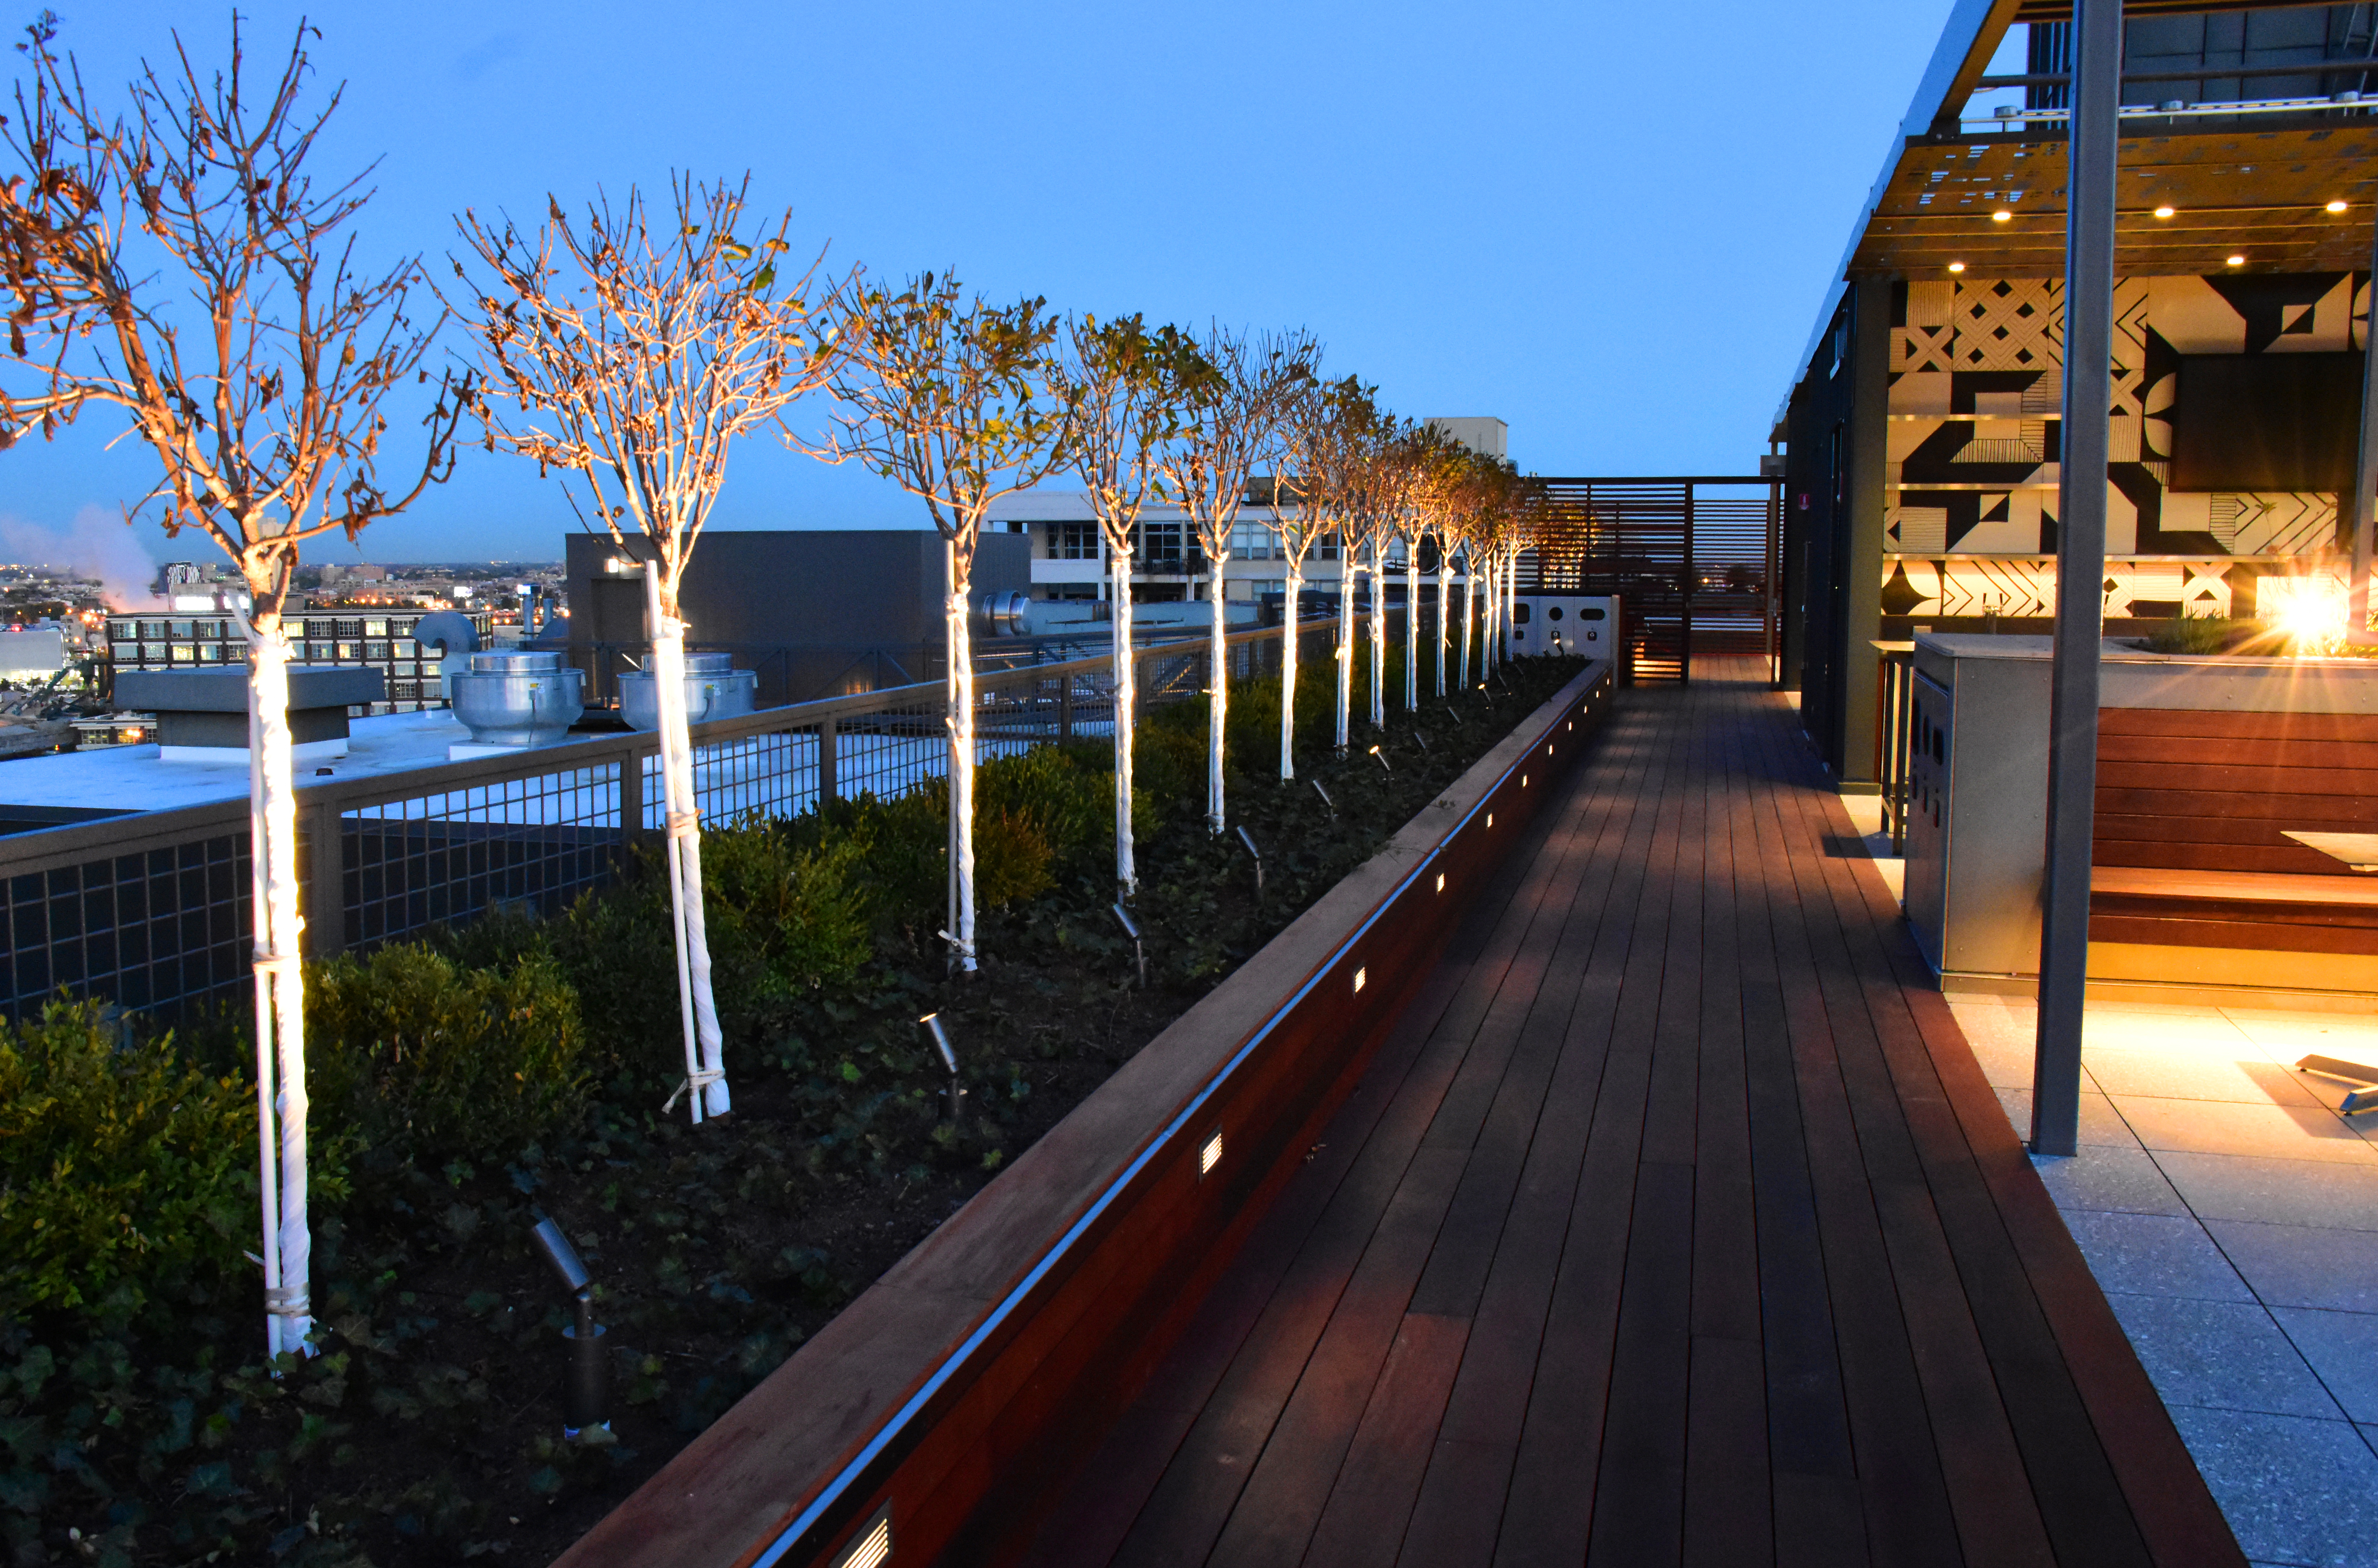 Ipe Decking and Landscaping